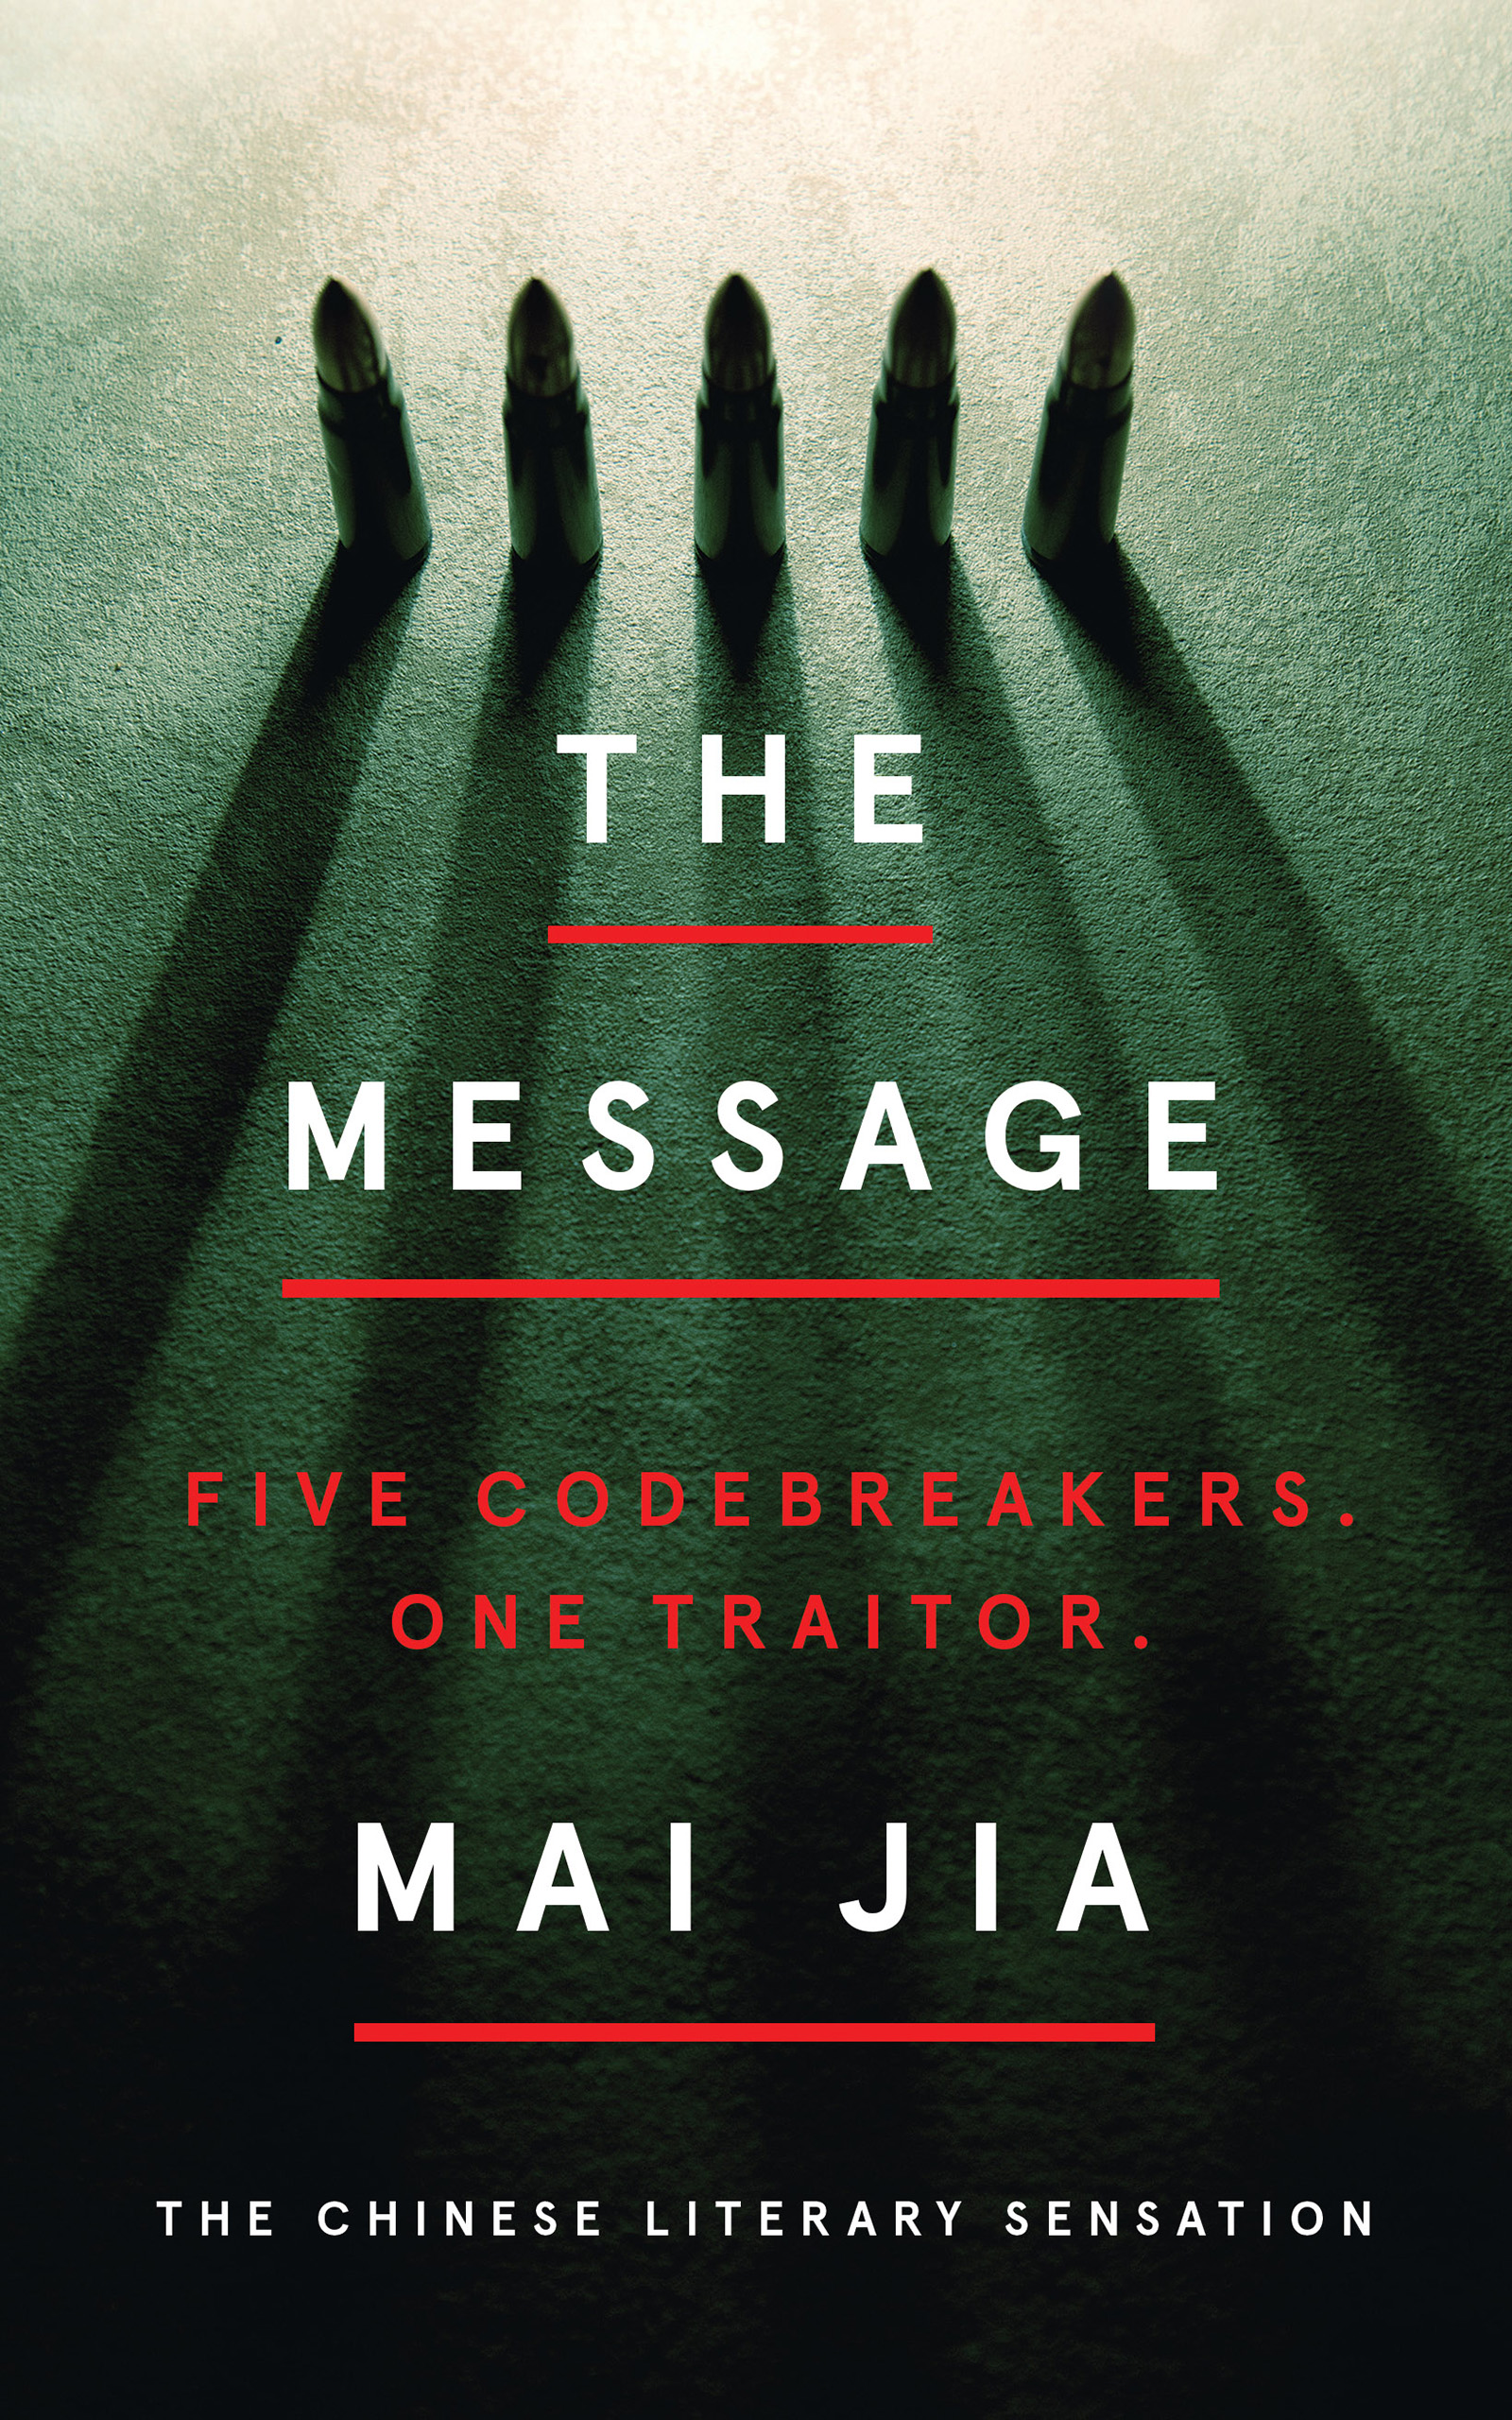 Jia_THE MESSAGE (1)_ Front Cover